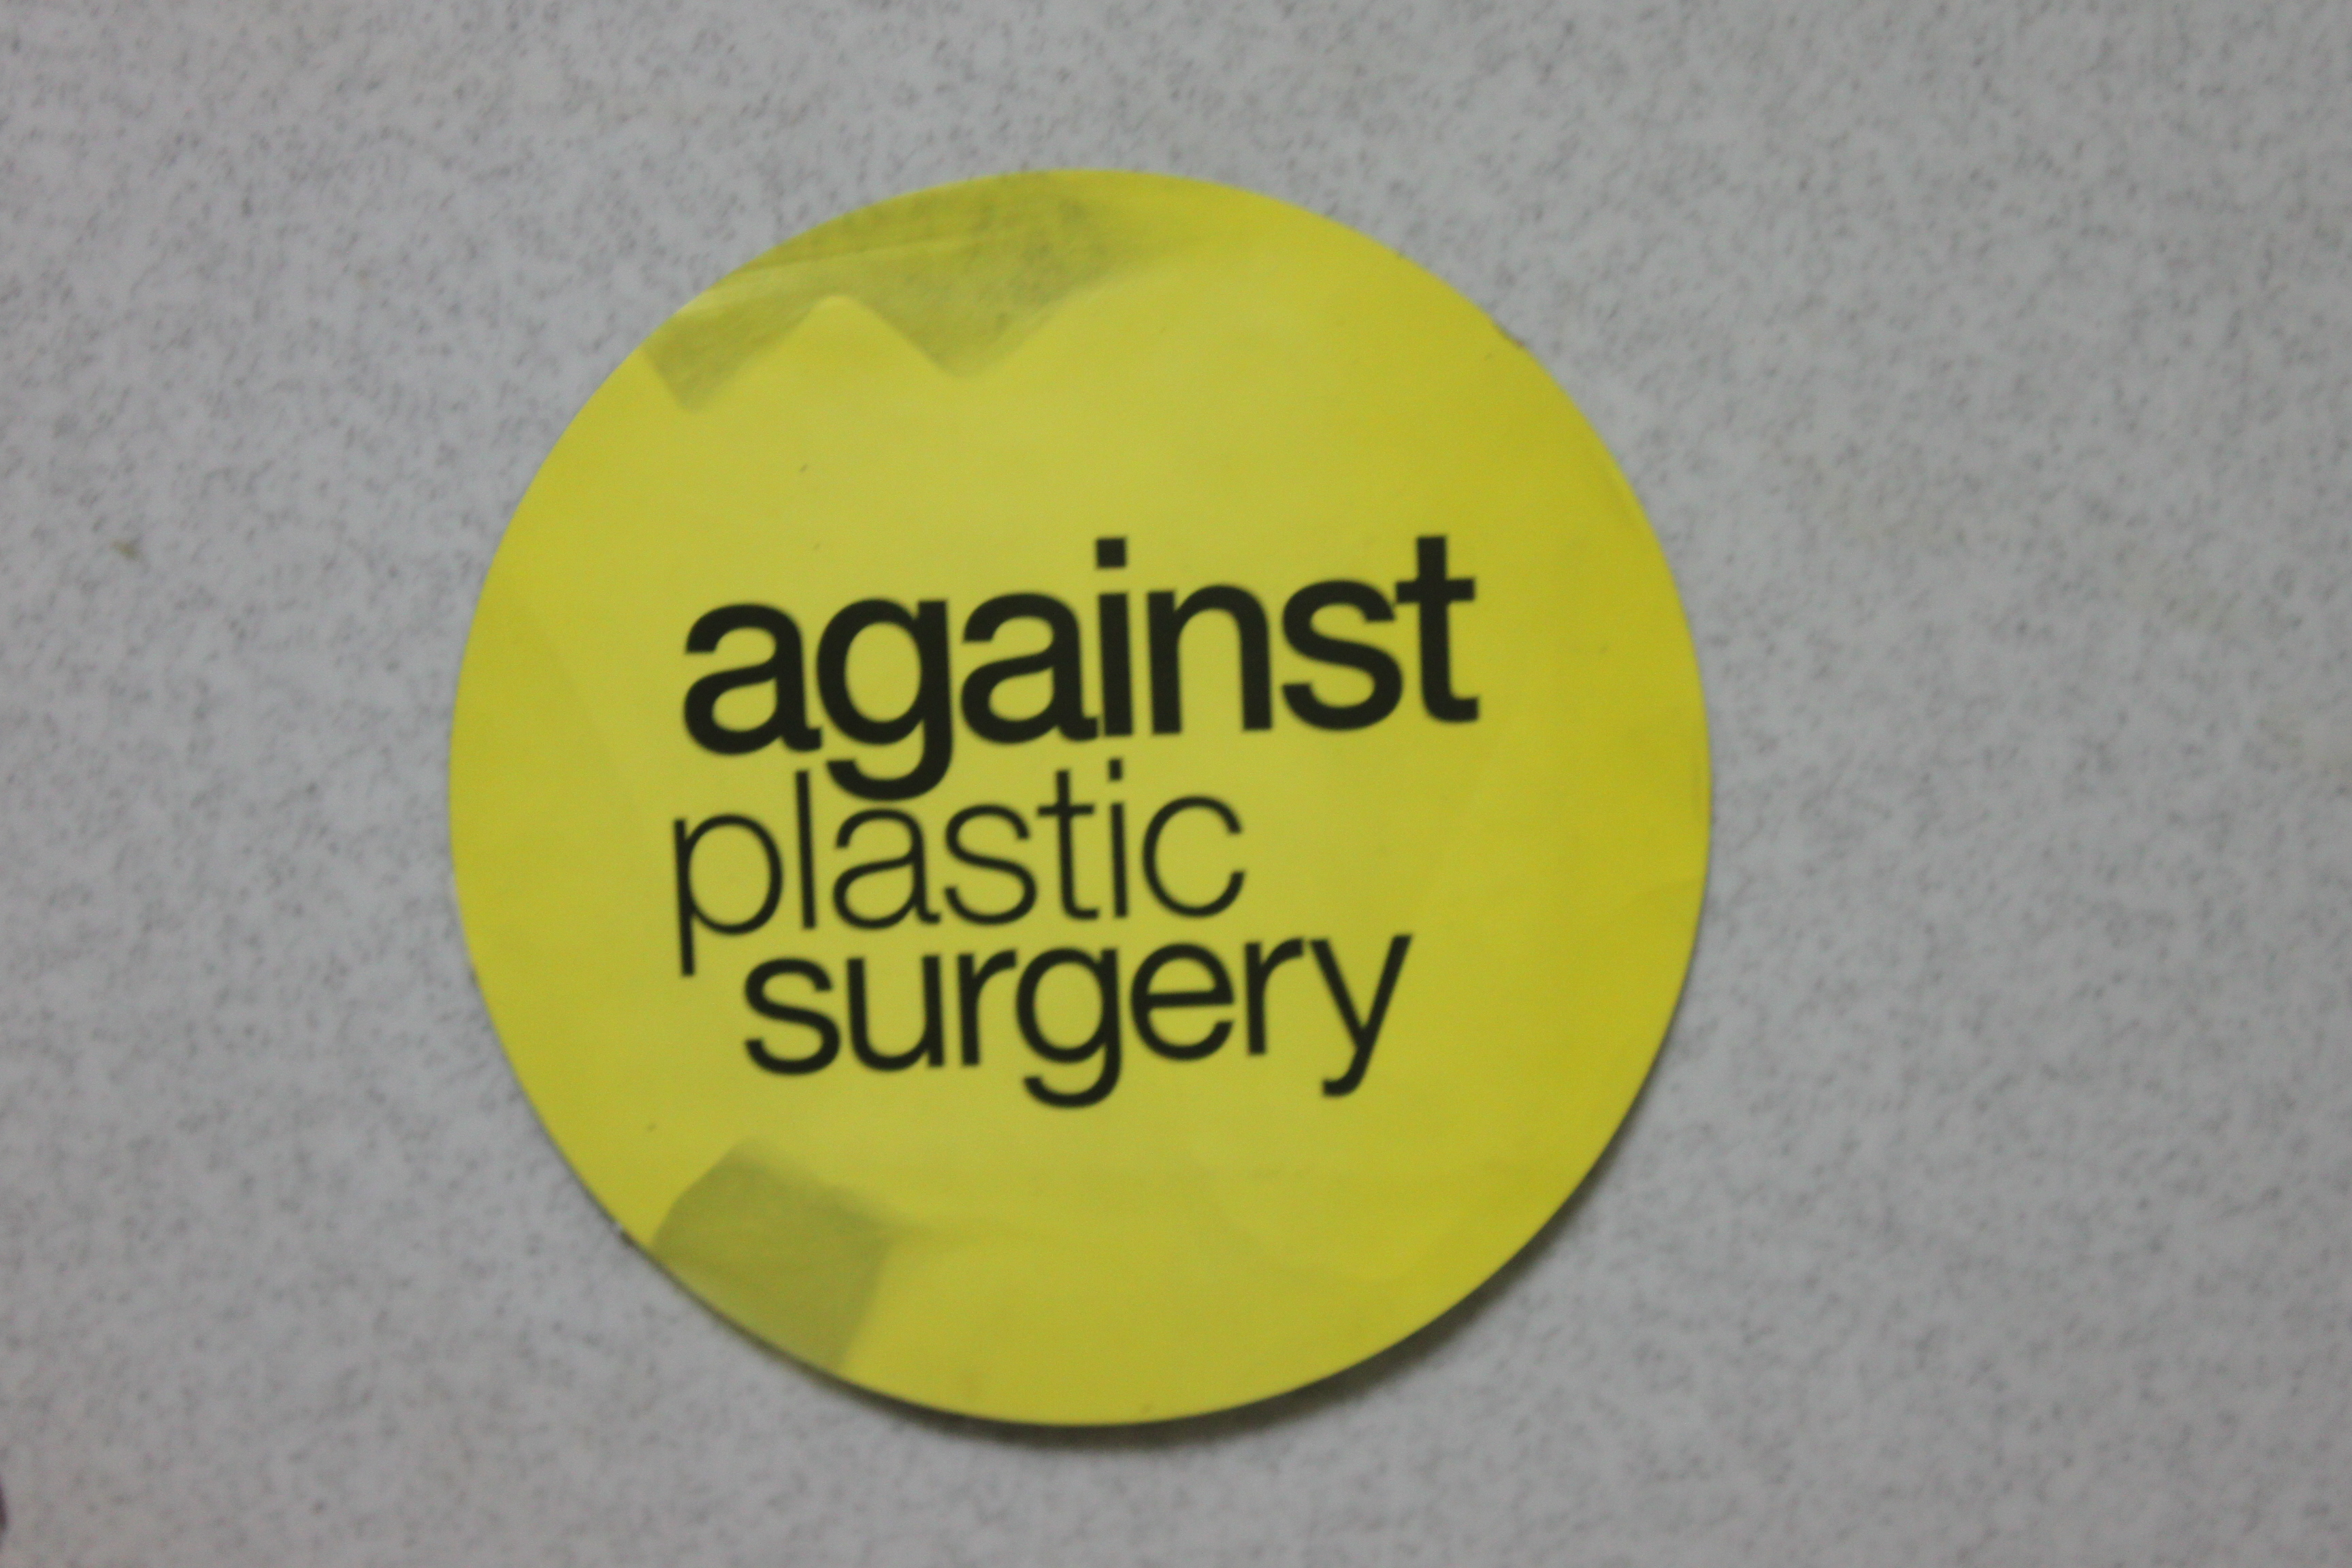 thesis against plastic surgery Im very interested in the topic of plastic surgery and how it's changing nor am i particularly against it should i thesis paper on plastic surgery.